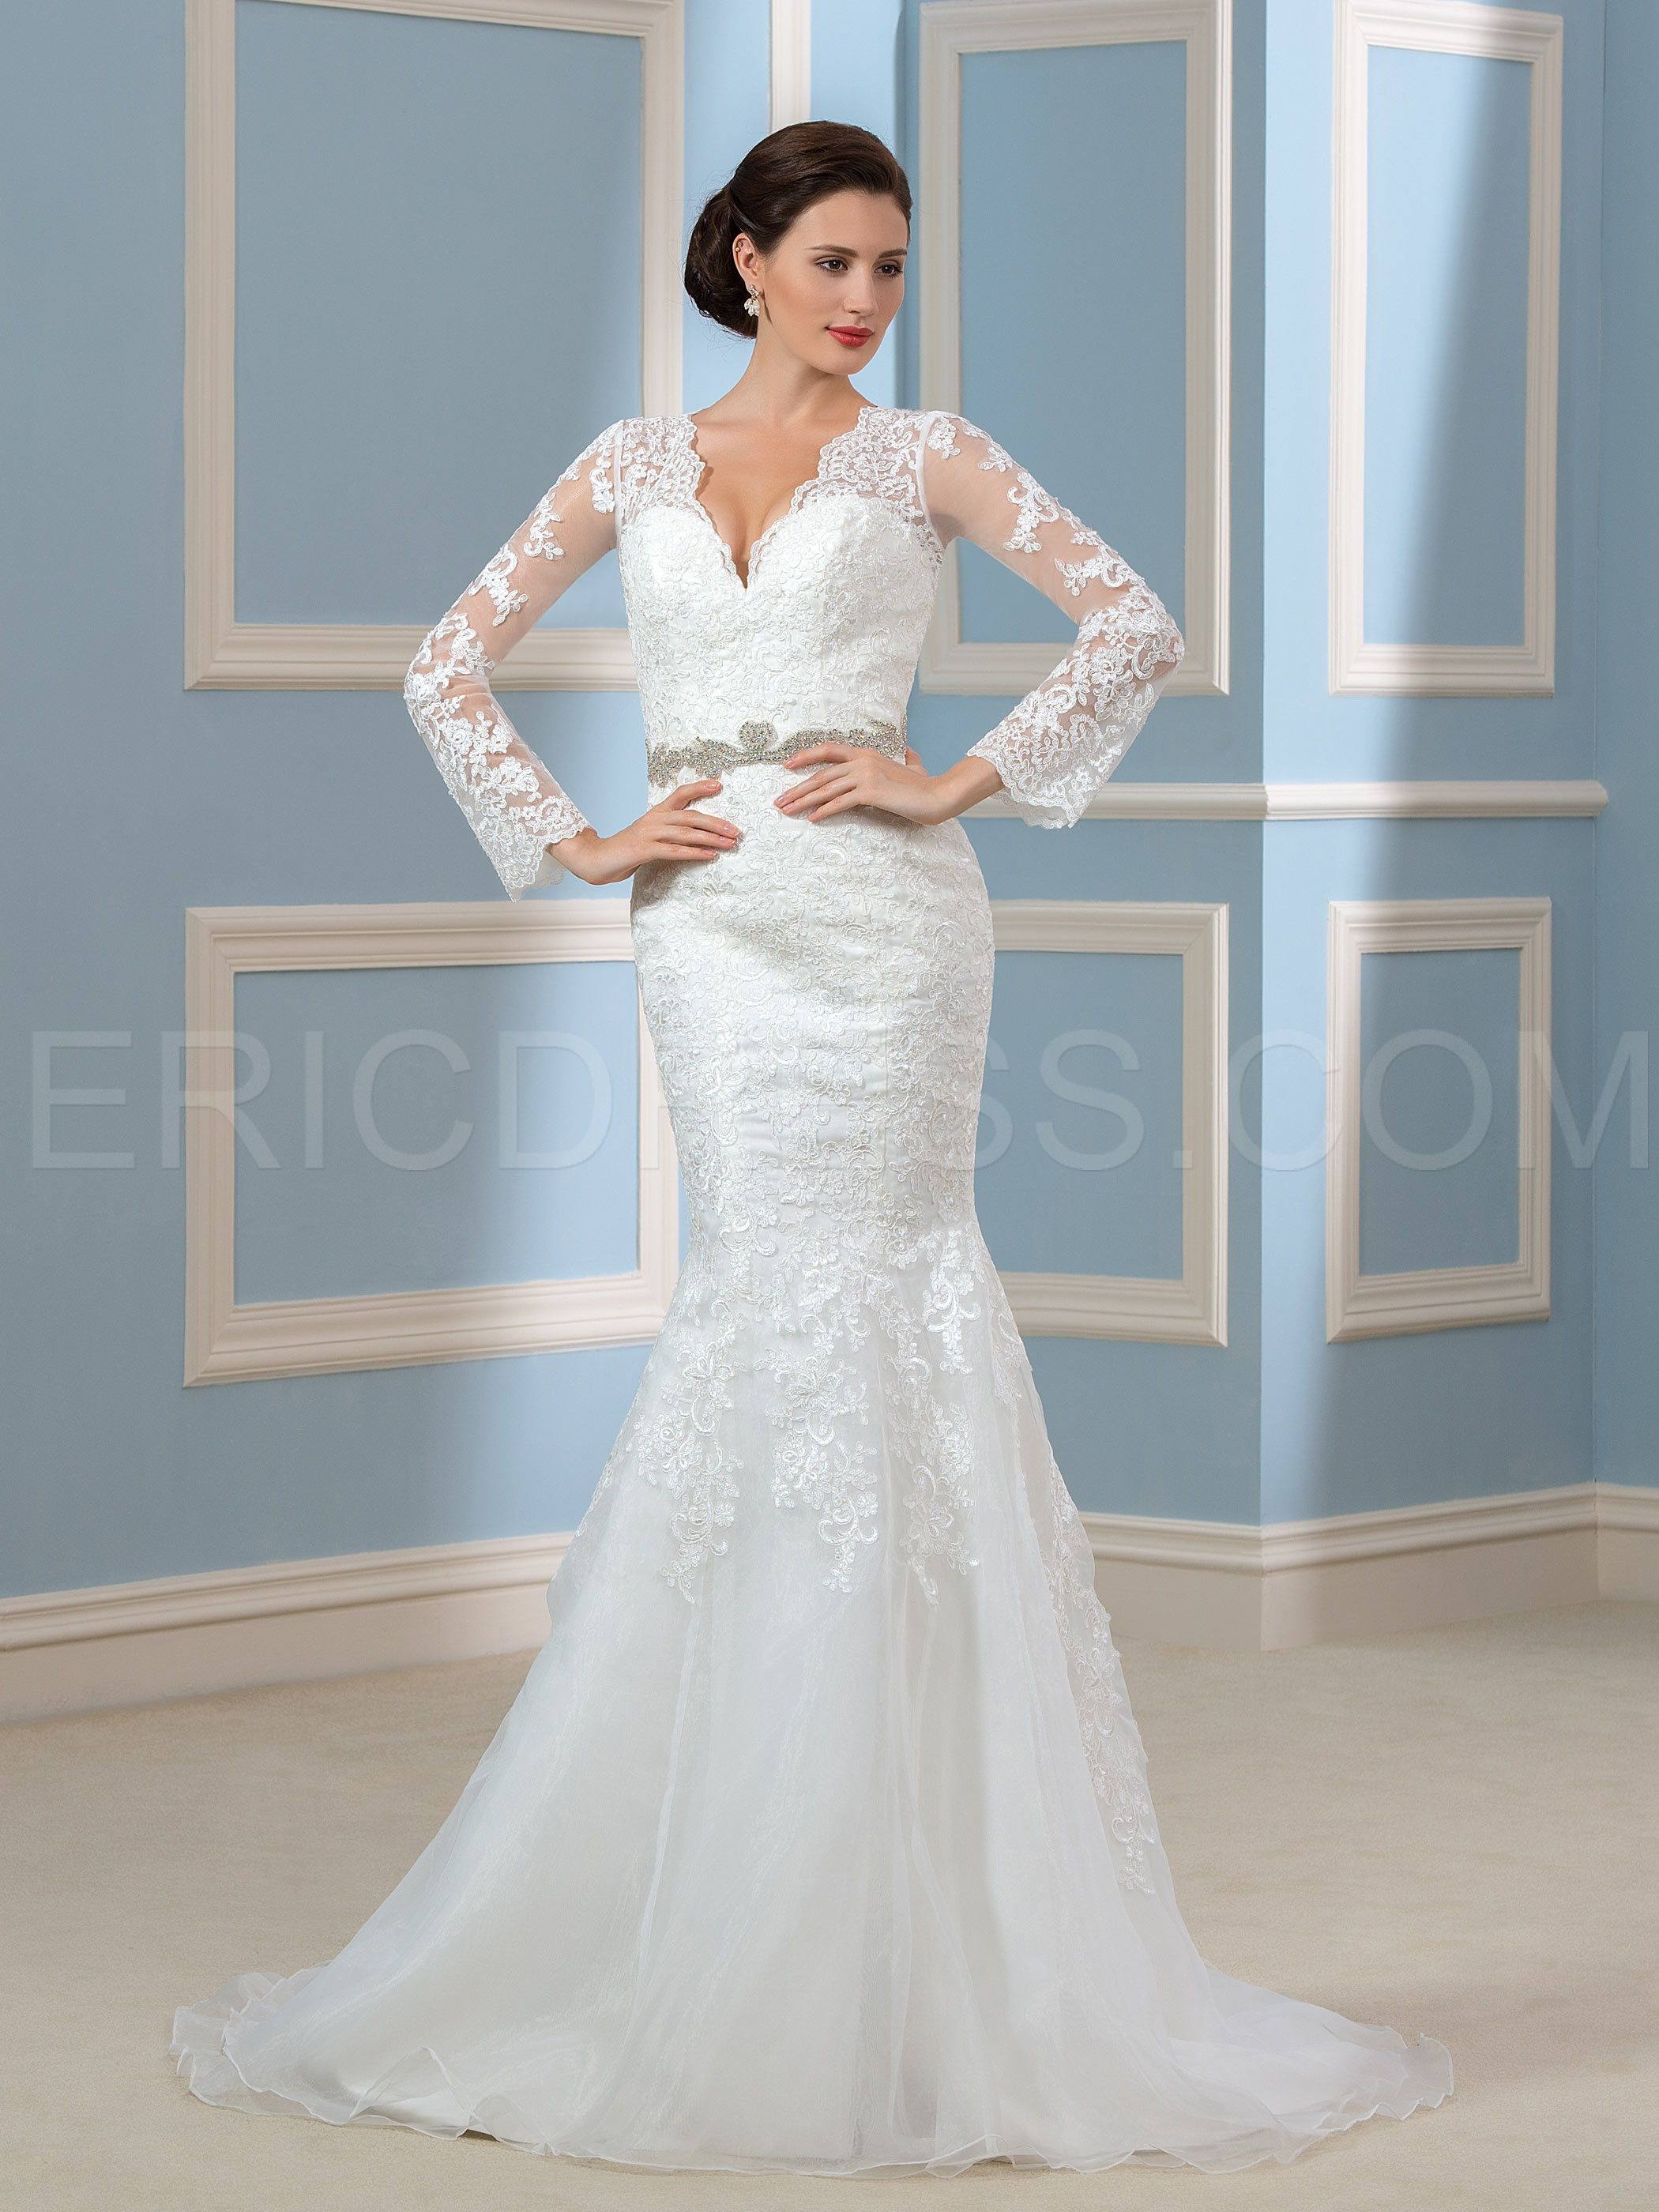 Ericdress Amazing V Neck Long Sleeves Mermaid Wedding Dress Wedding ...